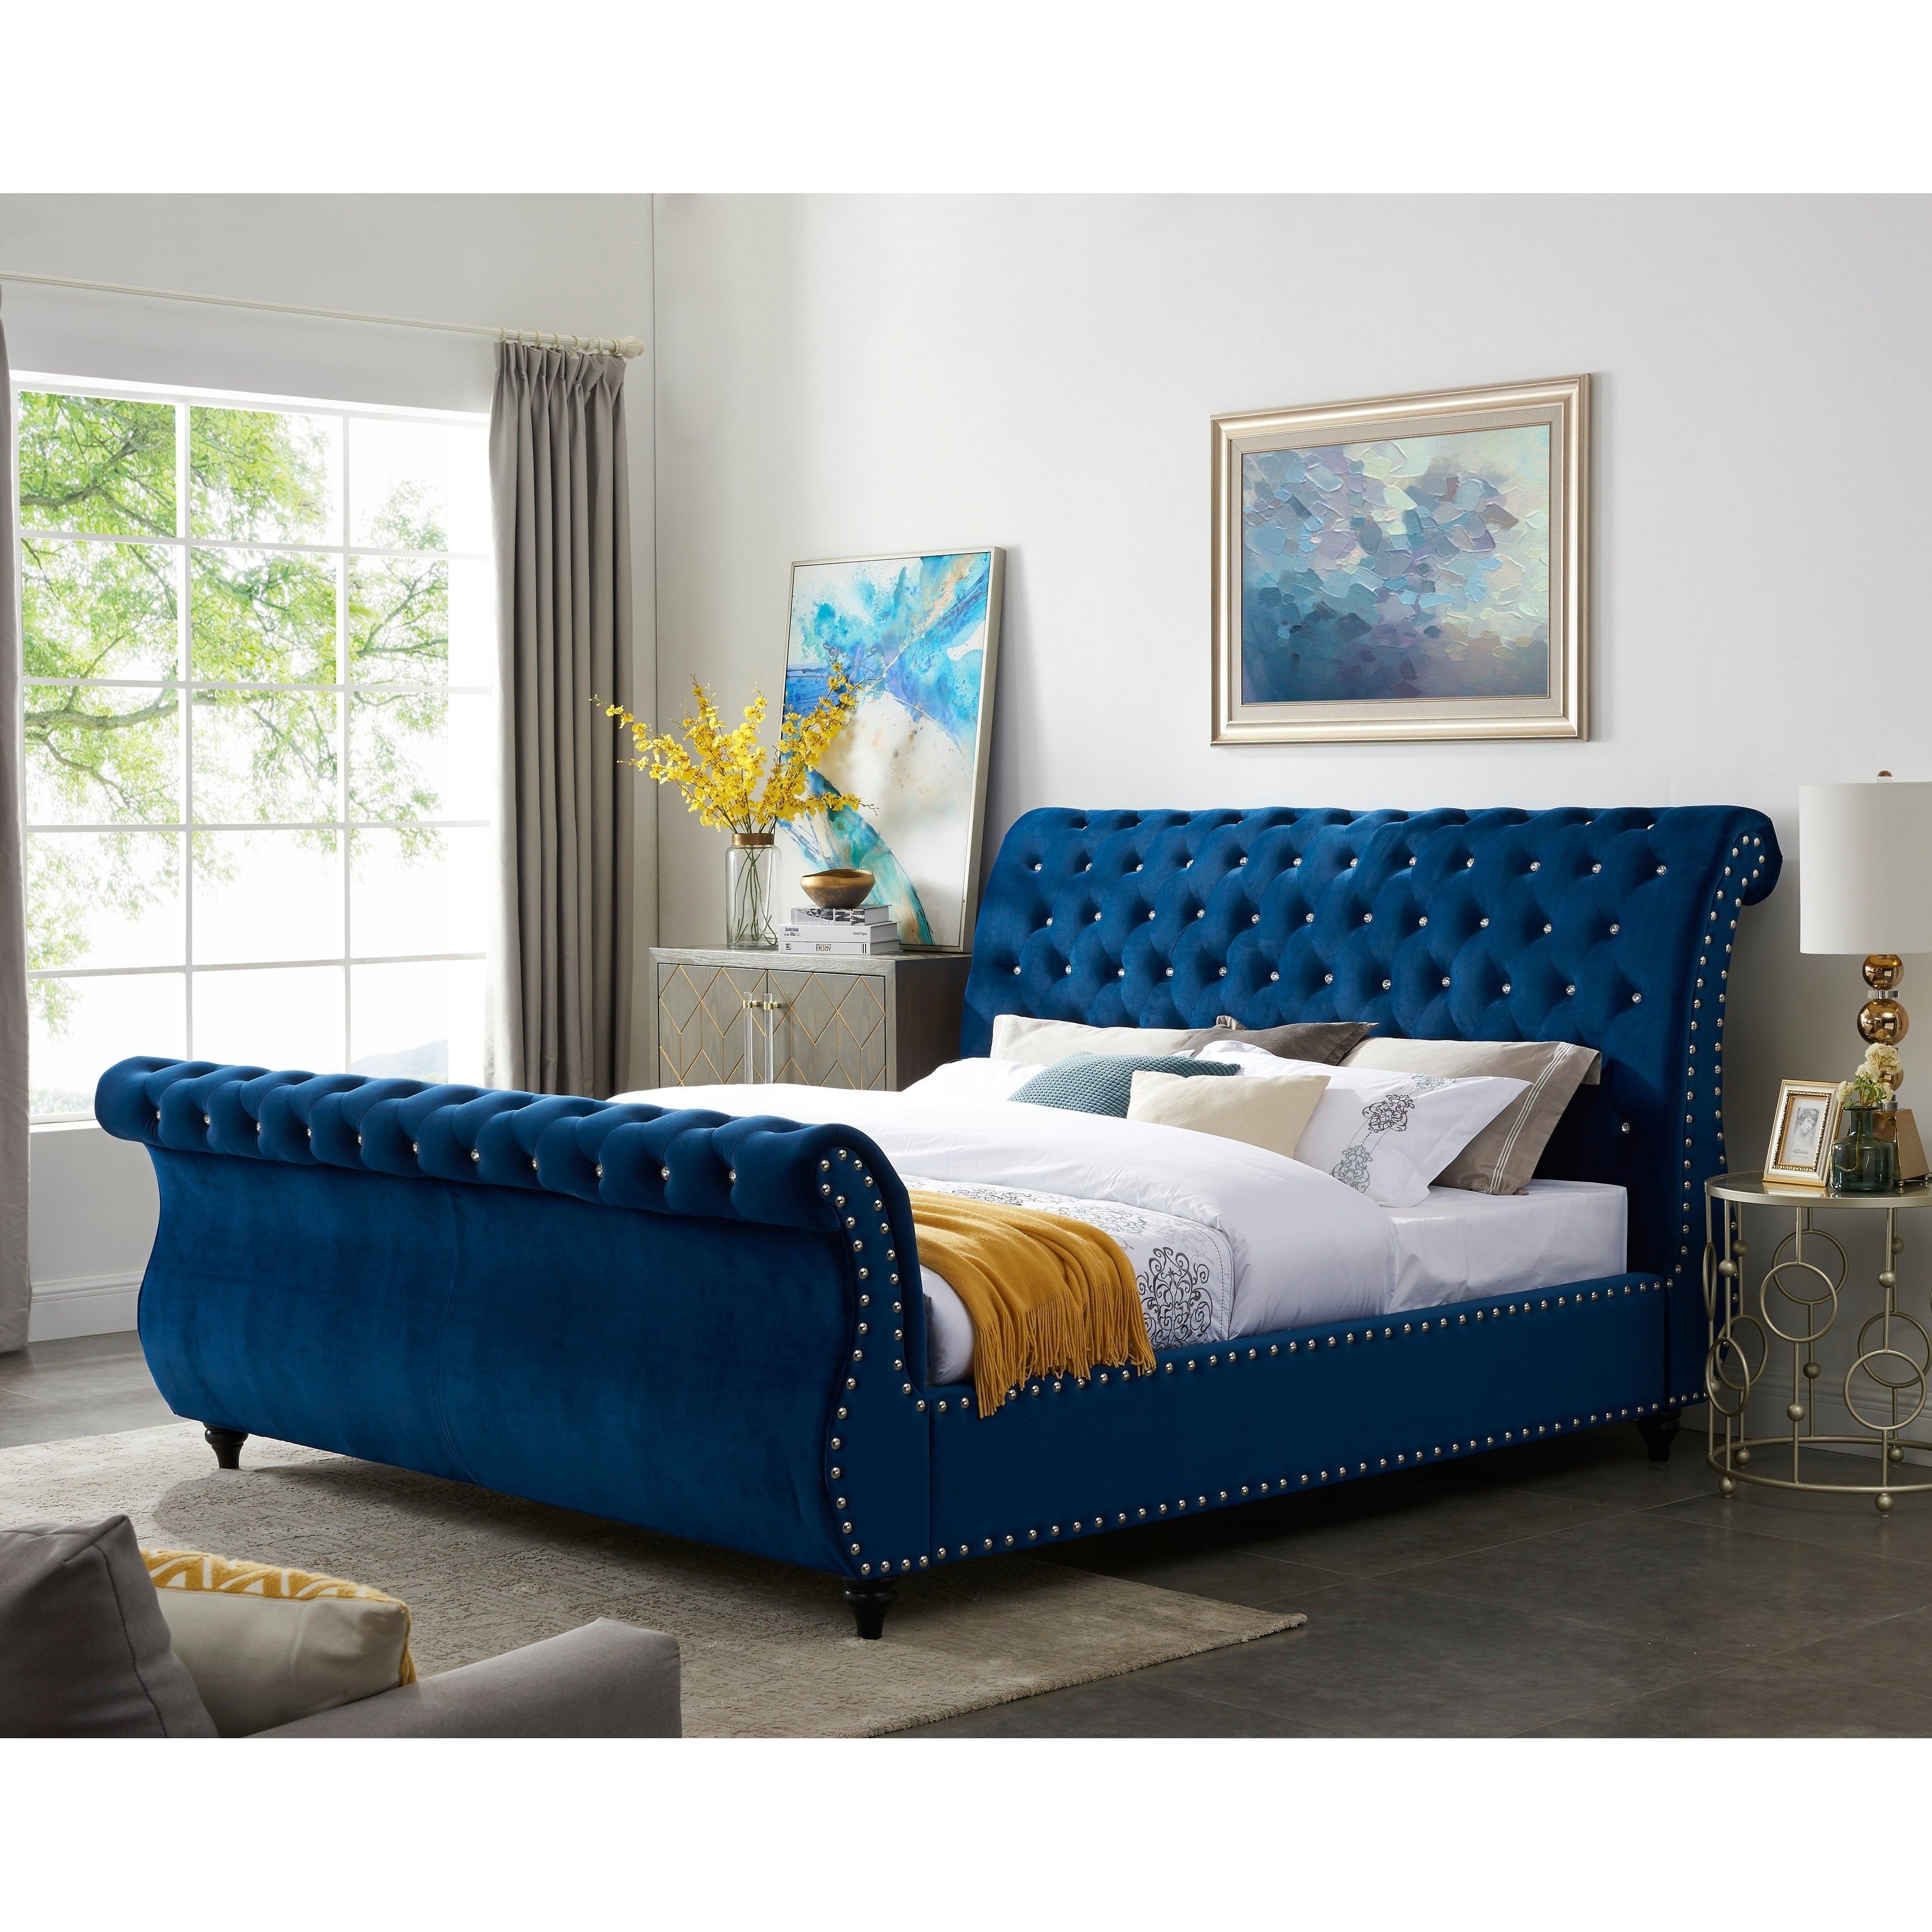 Shop Black Friday Deals On Evora Blue Velvet Upholstered Crystal Button Tufted Sleigh Bed Overstock 28234773